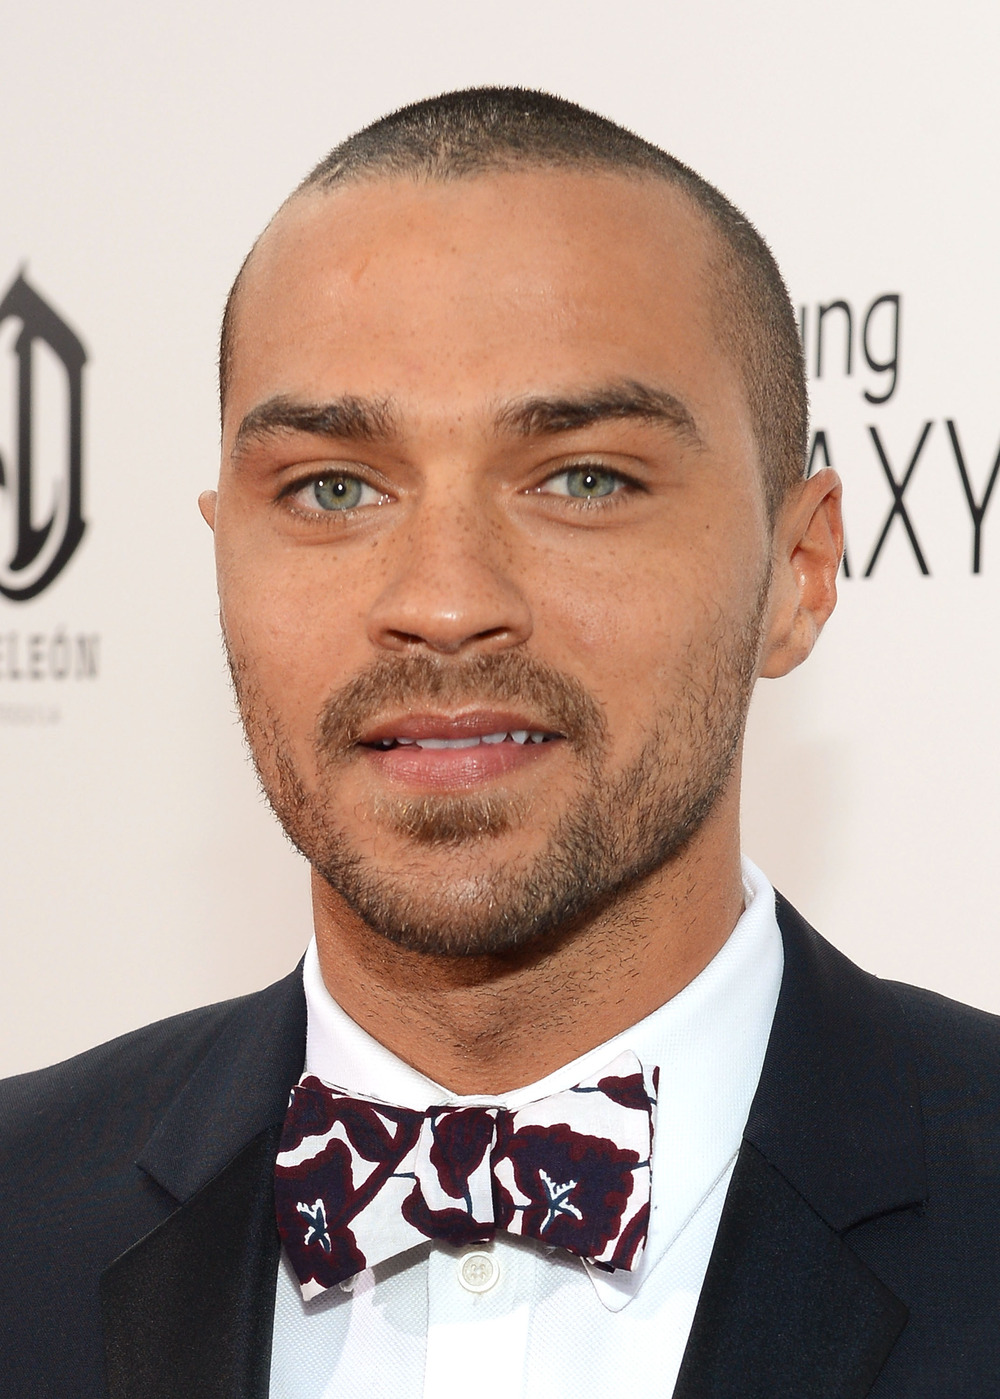 Jesse Williams to Compete in NBA All-Star Celebrity Game